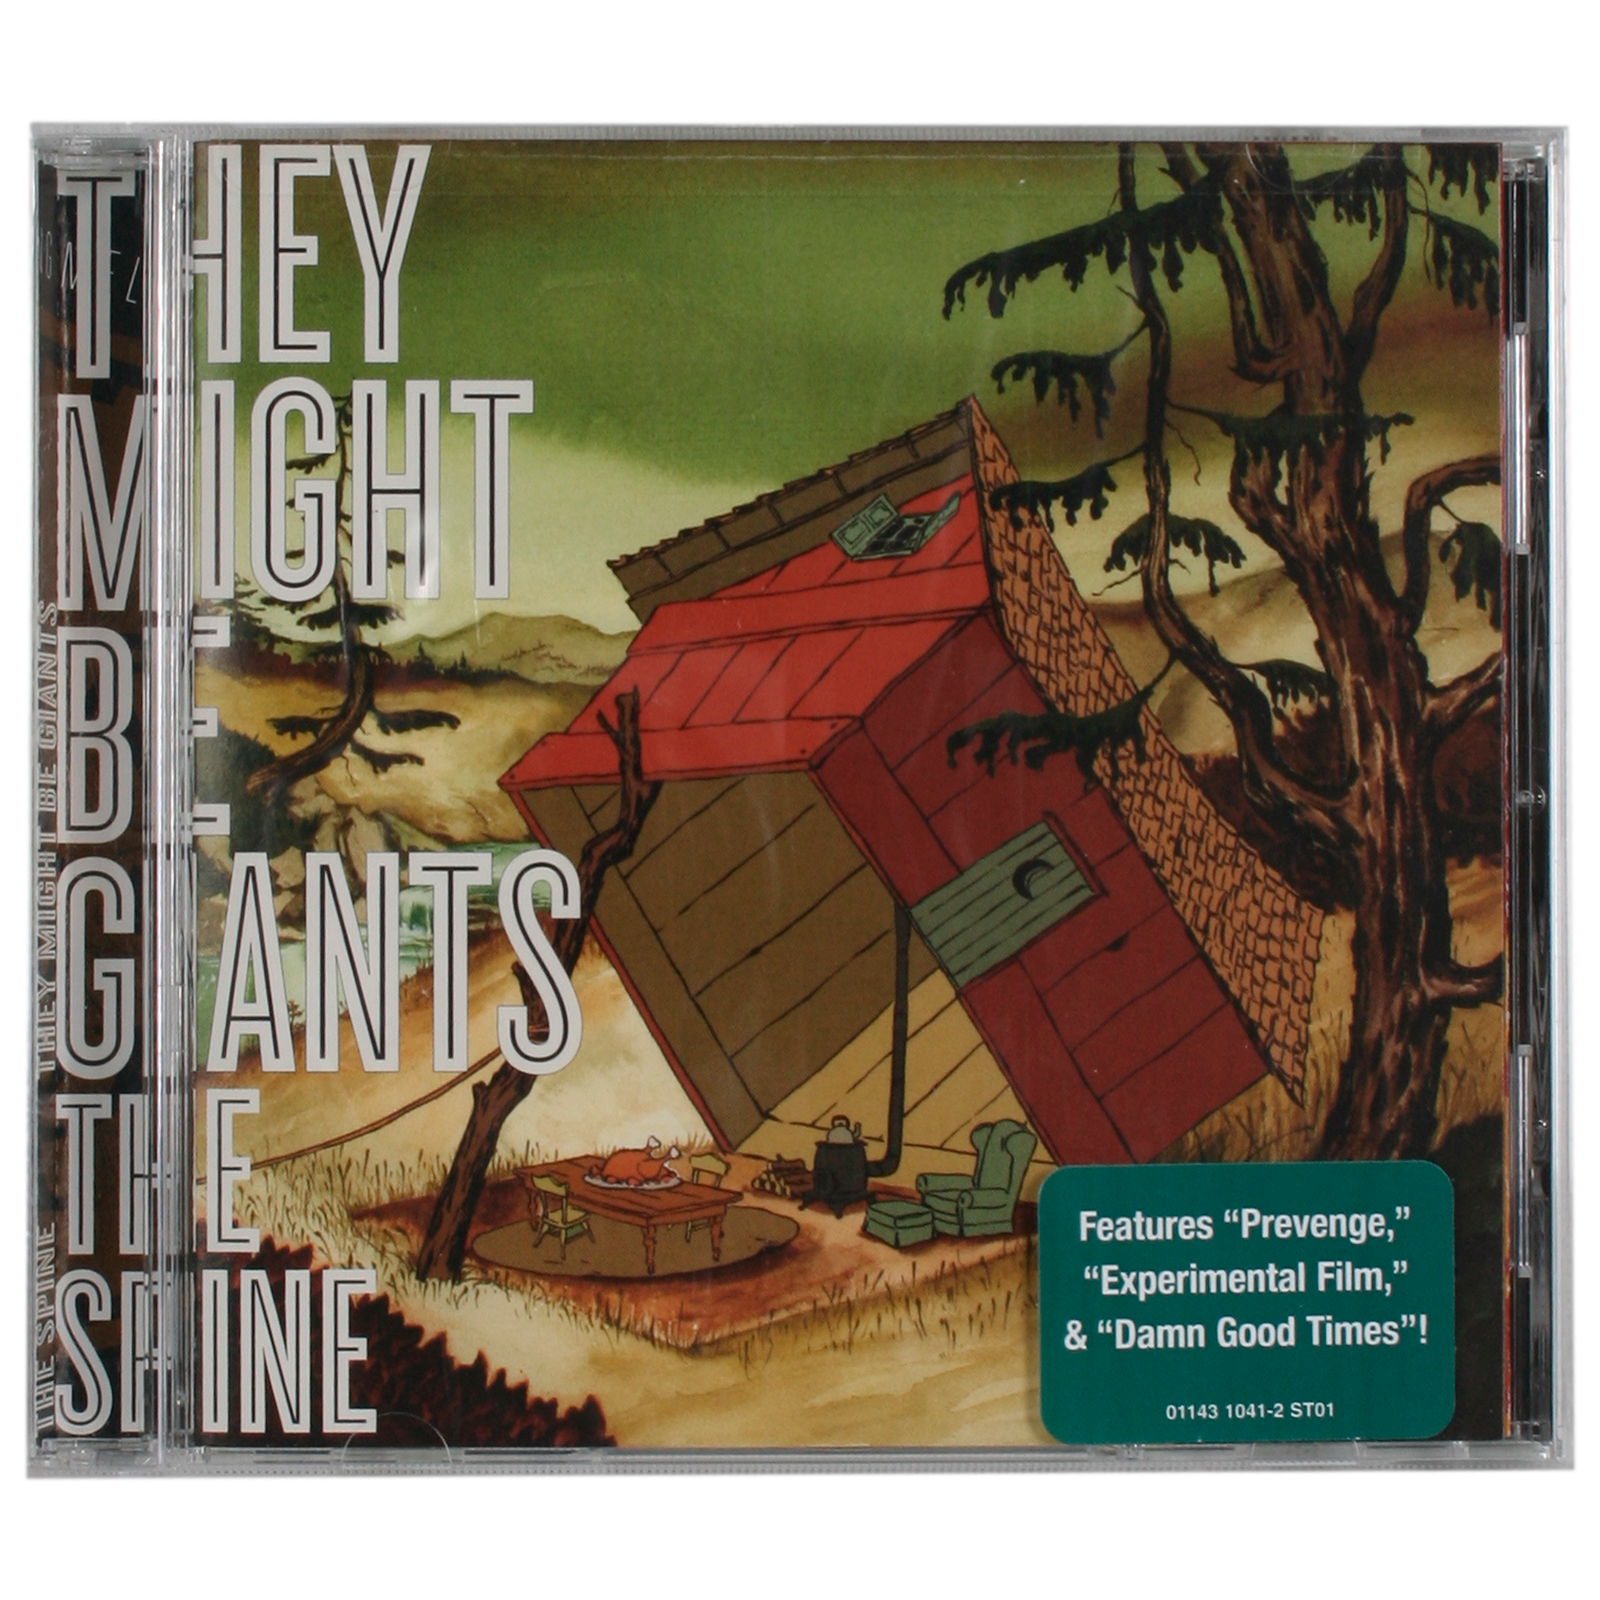 They Might Be Giants The Spine Cd